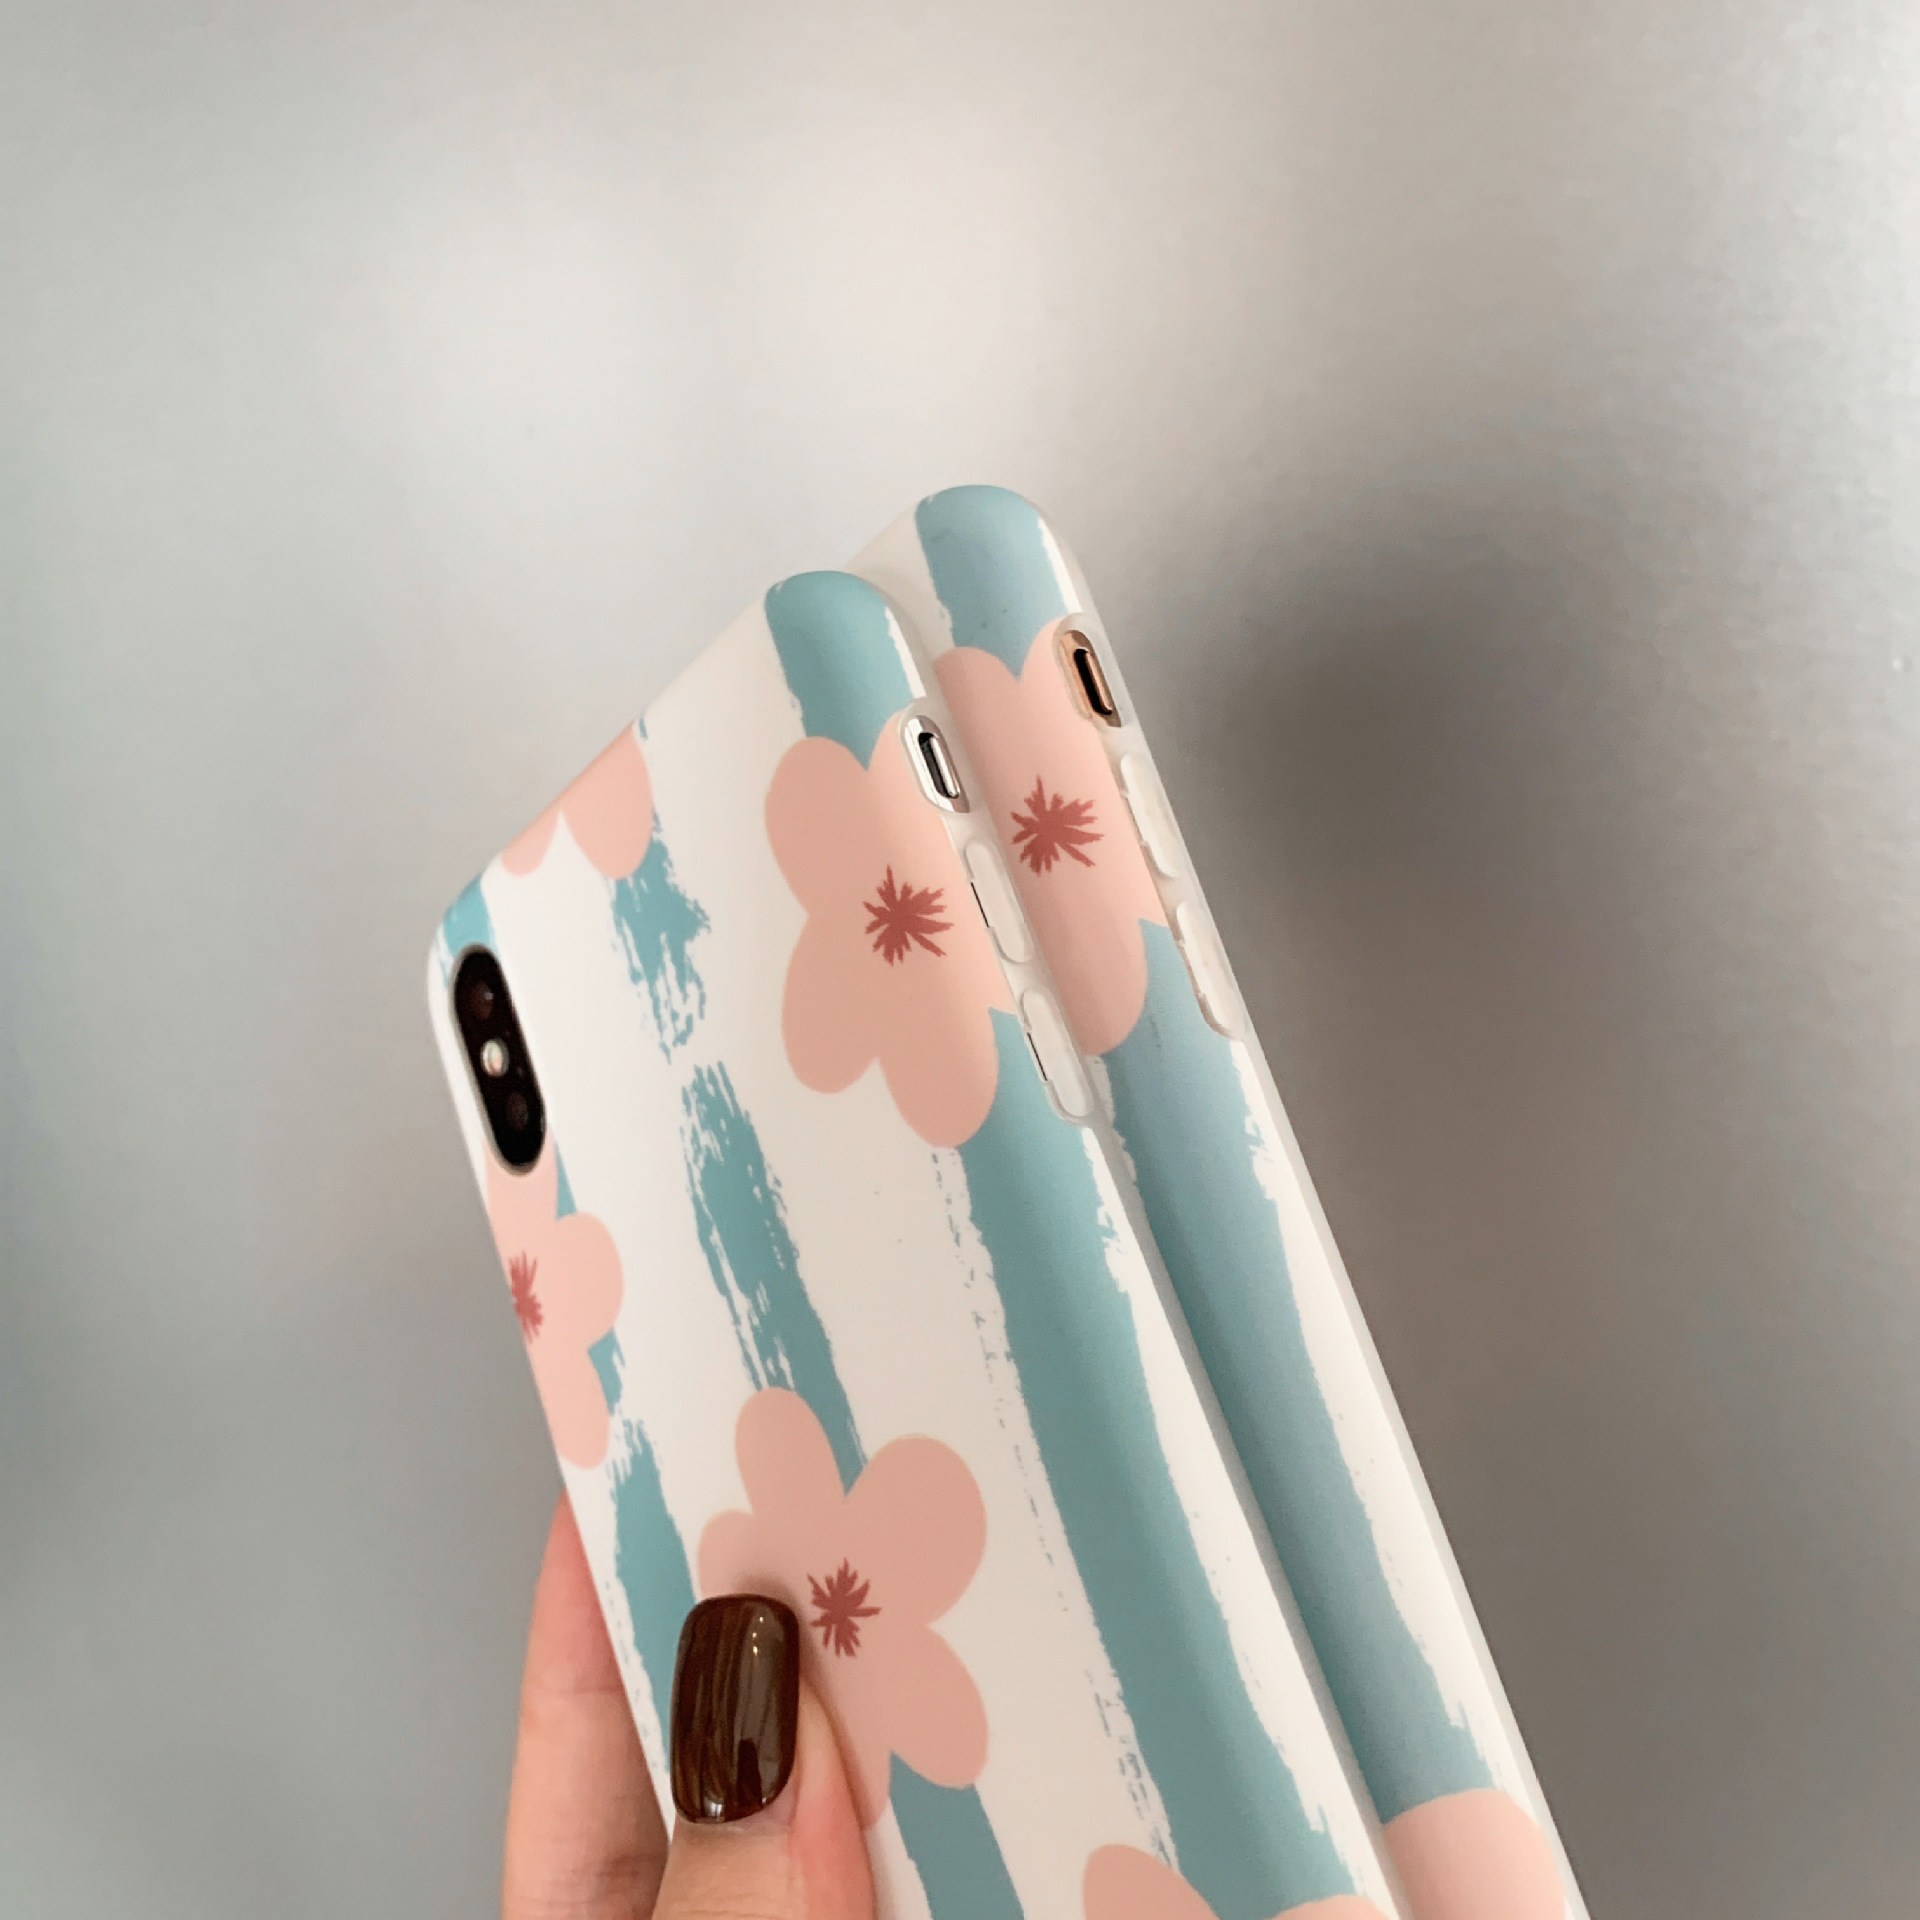 Fashion iPhone 8plus cute iPhone xs max flowers drop-proof phone case NHDV197914